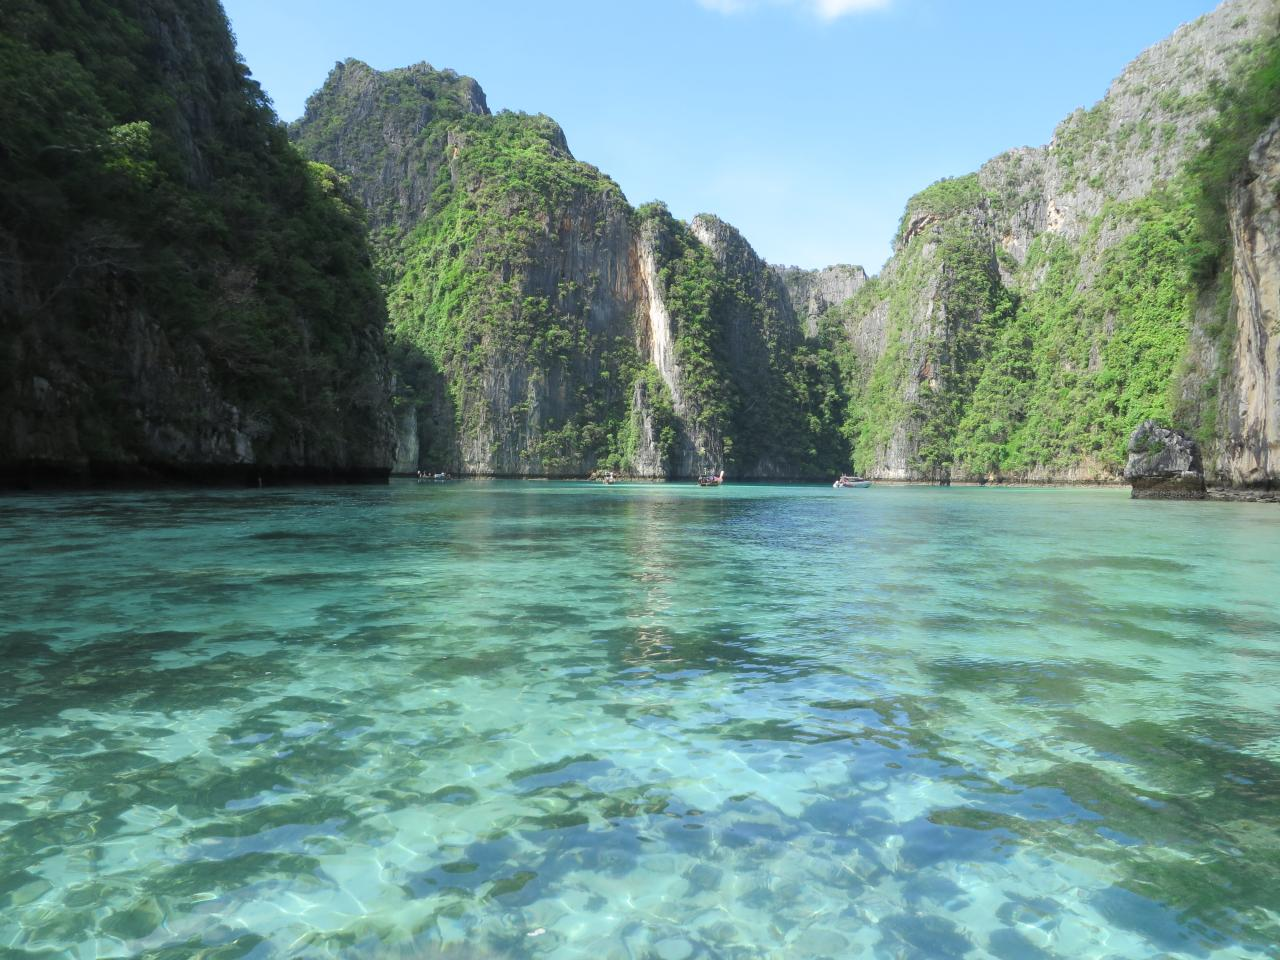 A true celebrity among all Thailand islands is, no doubt, Phi Phi! Crystal clear emerald water surrounds the sandy beaches contrasting with the towering dark coastal cliffs and bright green vegetation